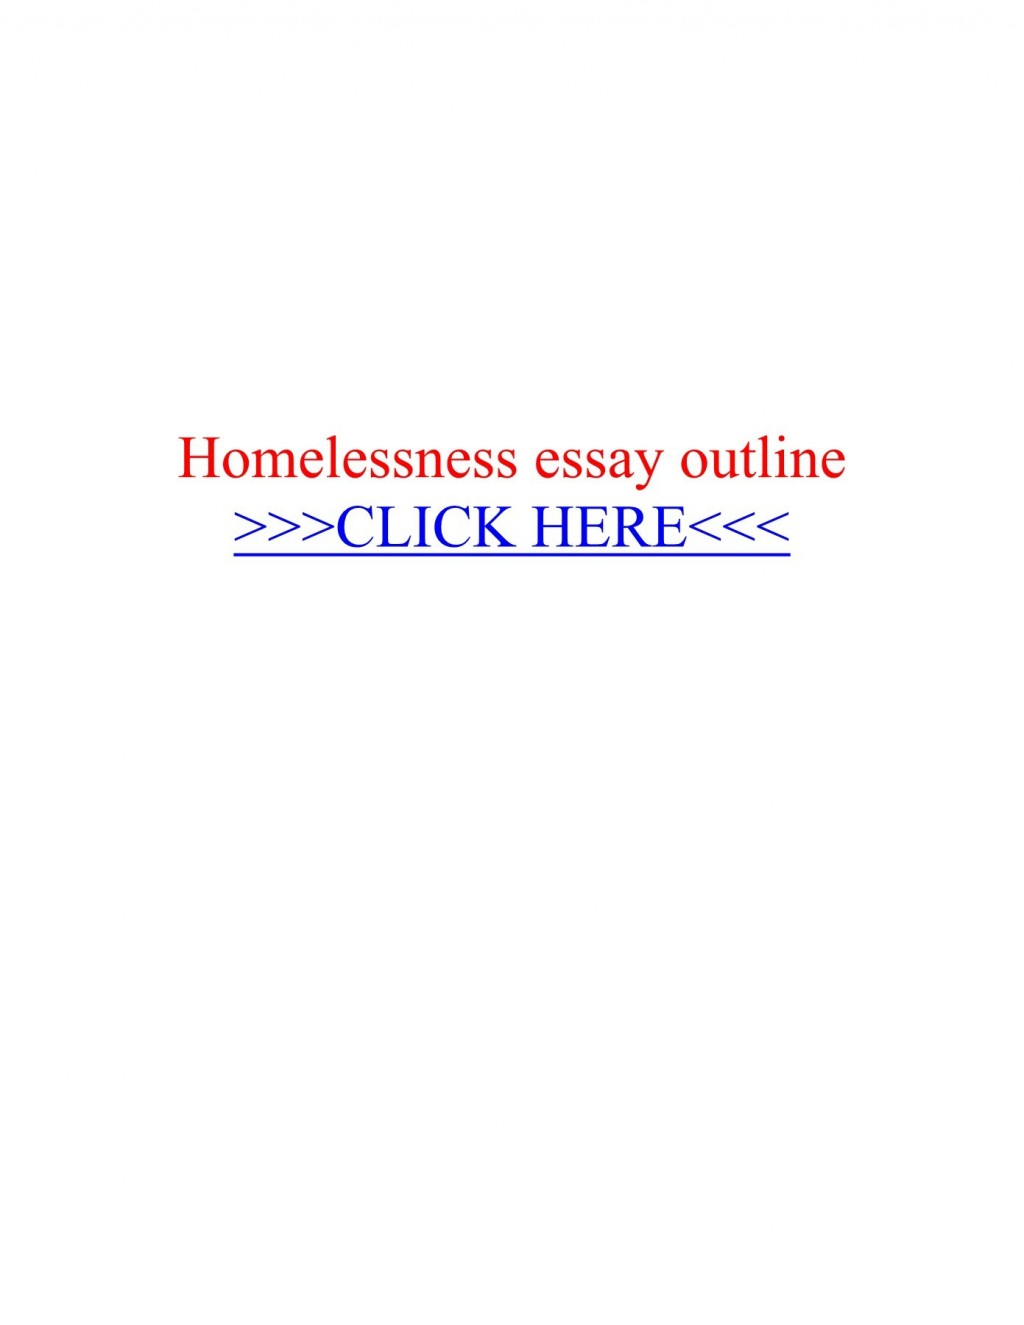 013 Homelessness Essay Beautiful Topics Outline Conclusion Large